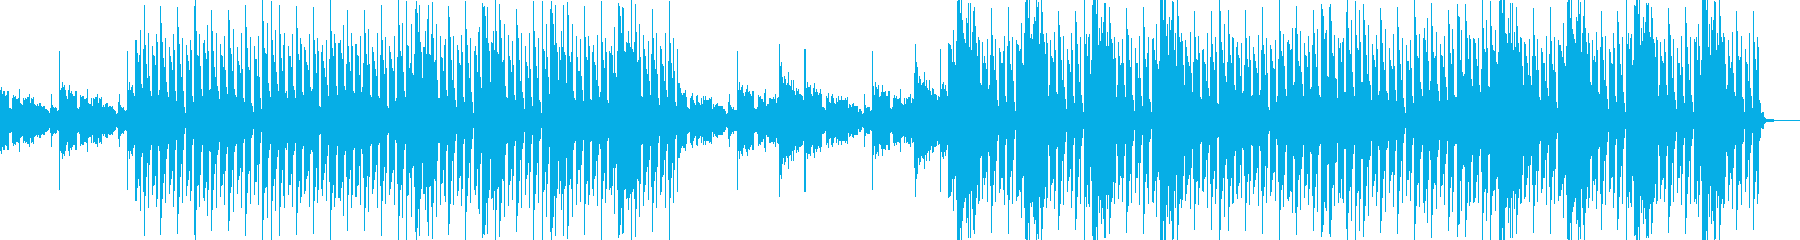 Near-future tension / texture opening's reproduced waveform